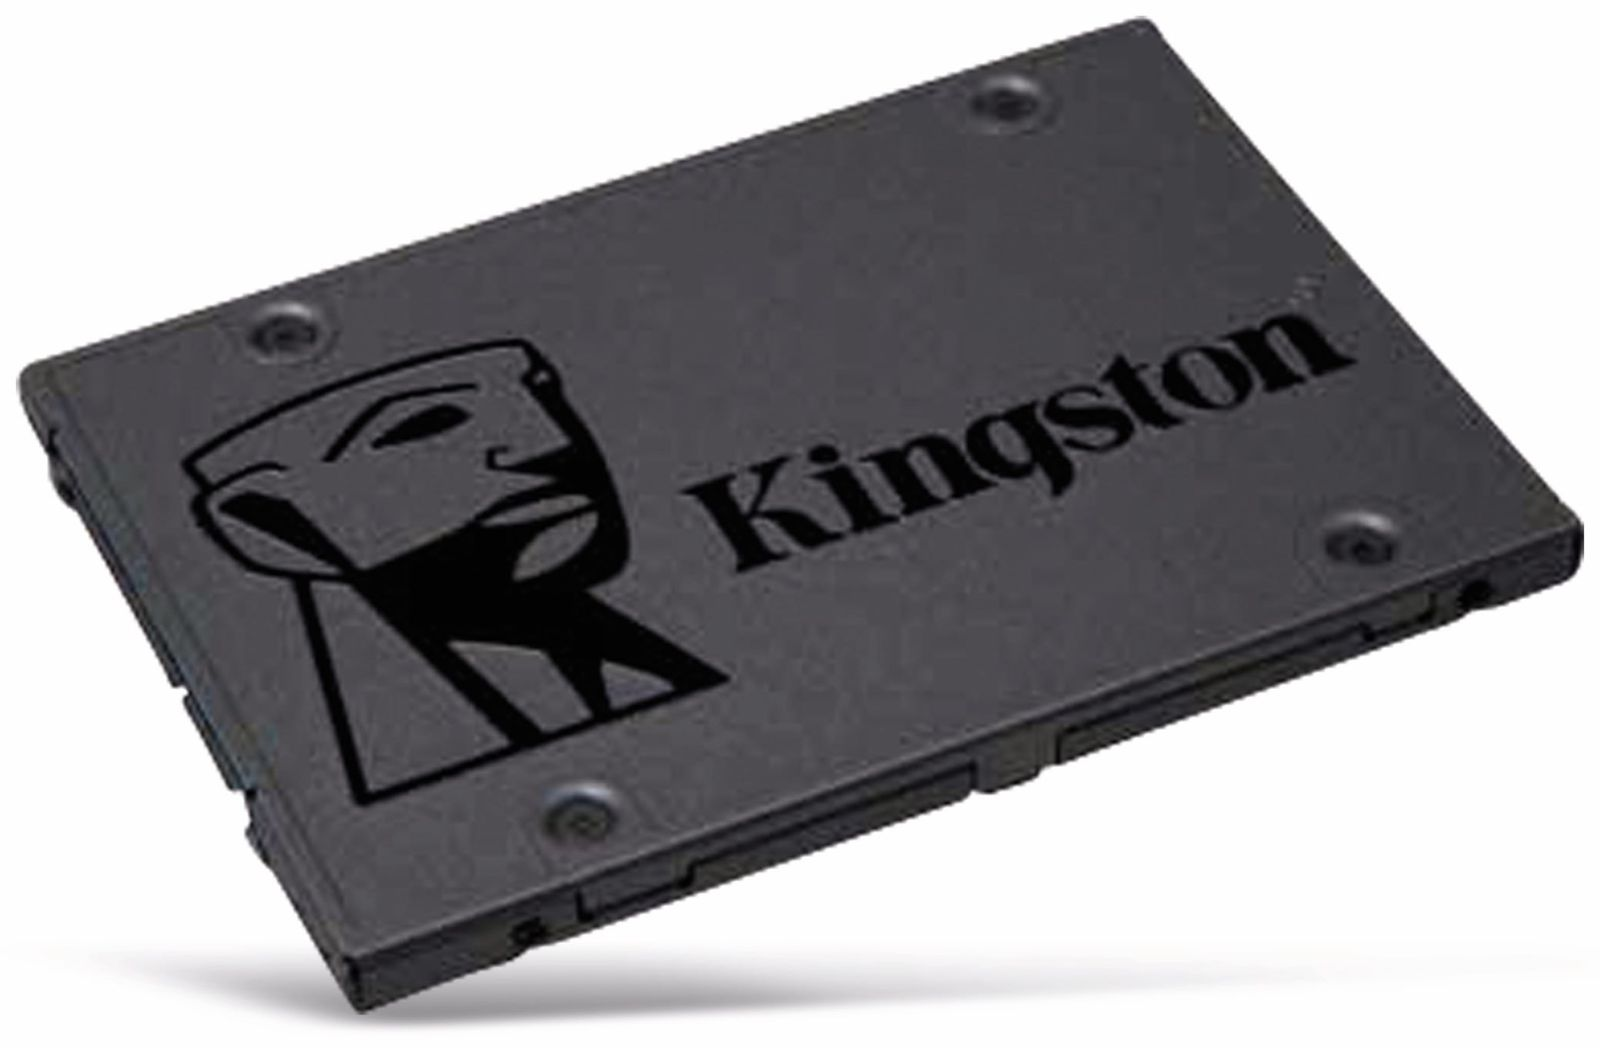 SSD-Kingston SA400S37/480G, 480 GB von Kingston